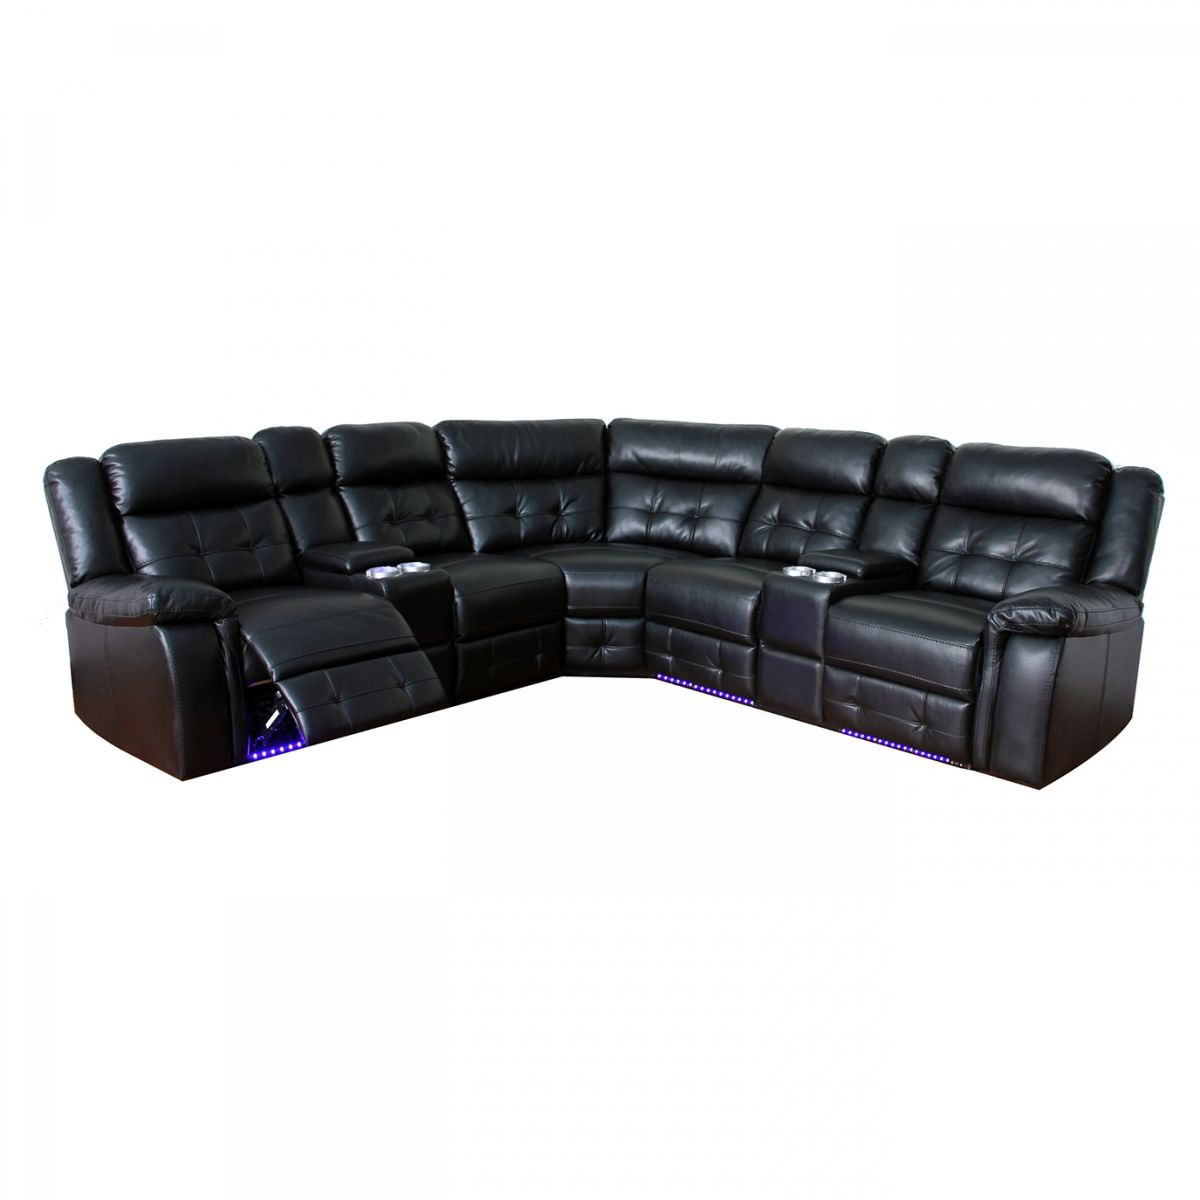 Sofa Led Cobalt Black Reclining Sectional With Led Lights